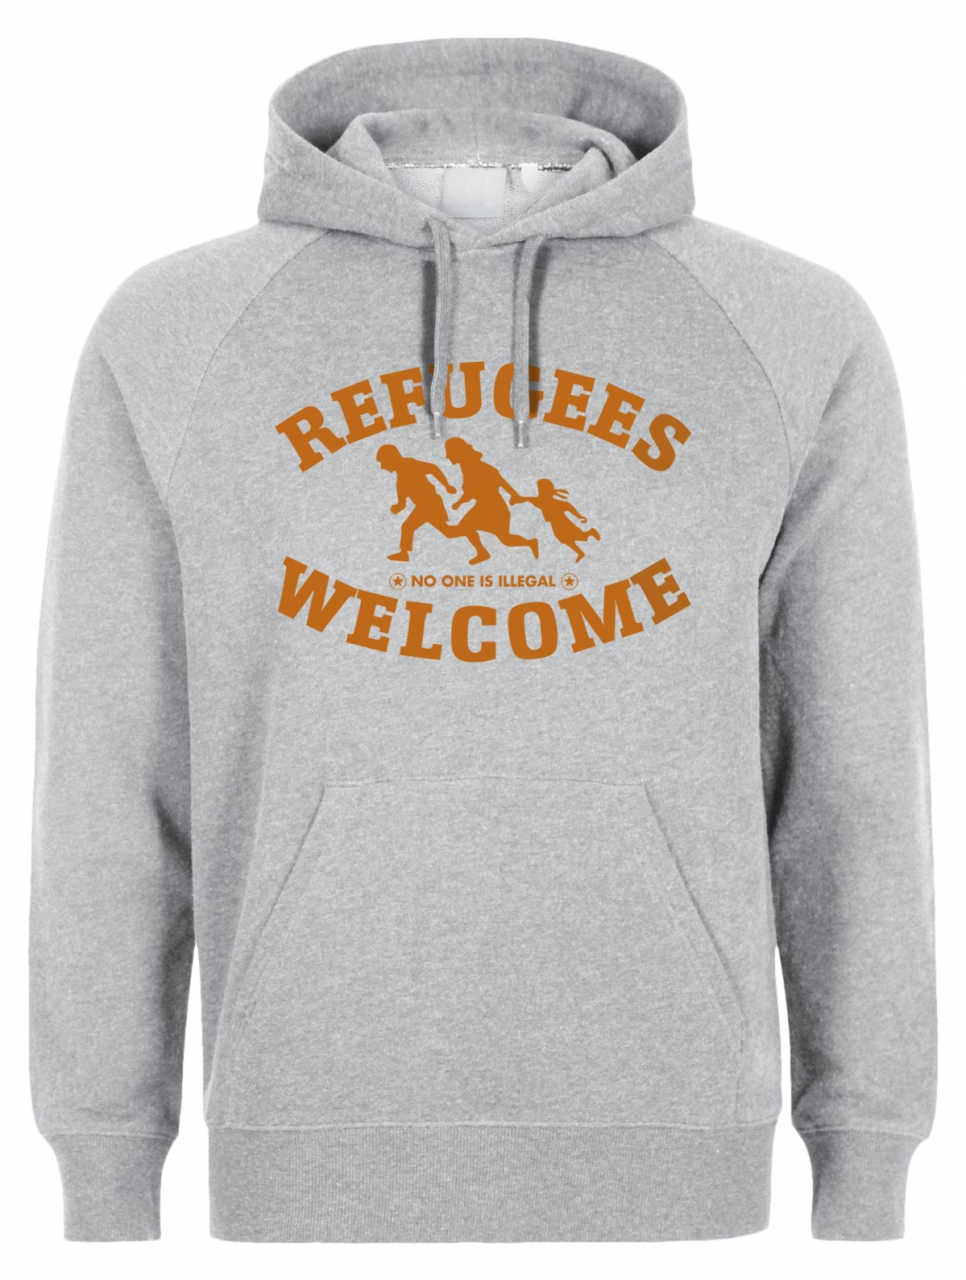 Refugees welcome Hoody Grau mit orangener Aufschrift - No one is illegal